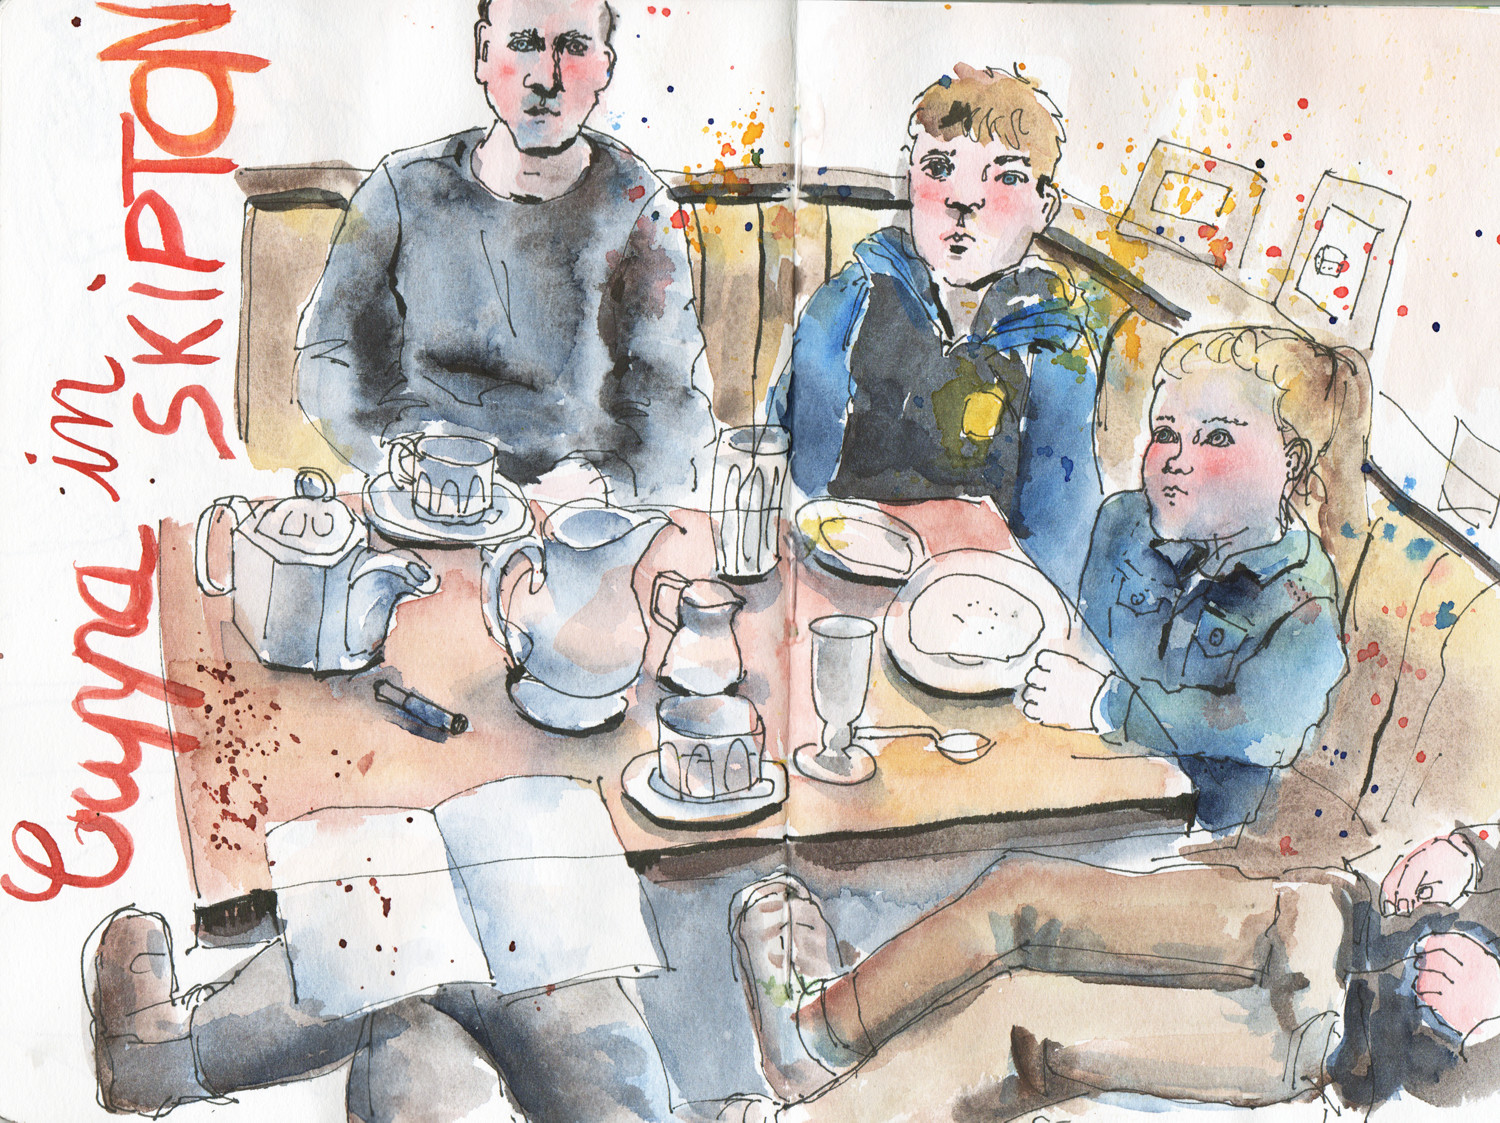 Cafe Sketch in pen and watercolour by Sophie Peanut